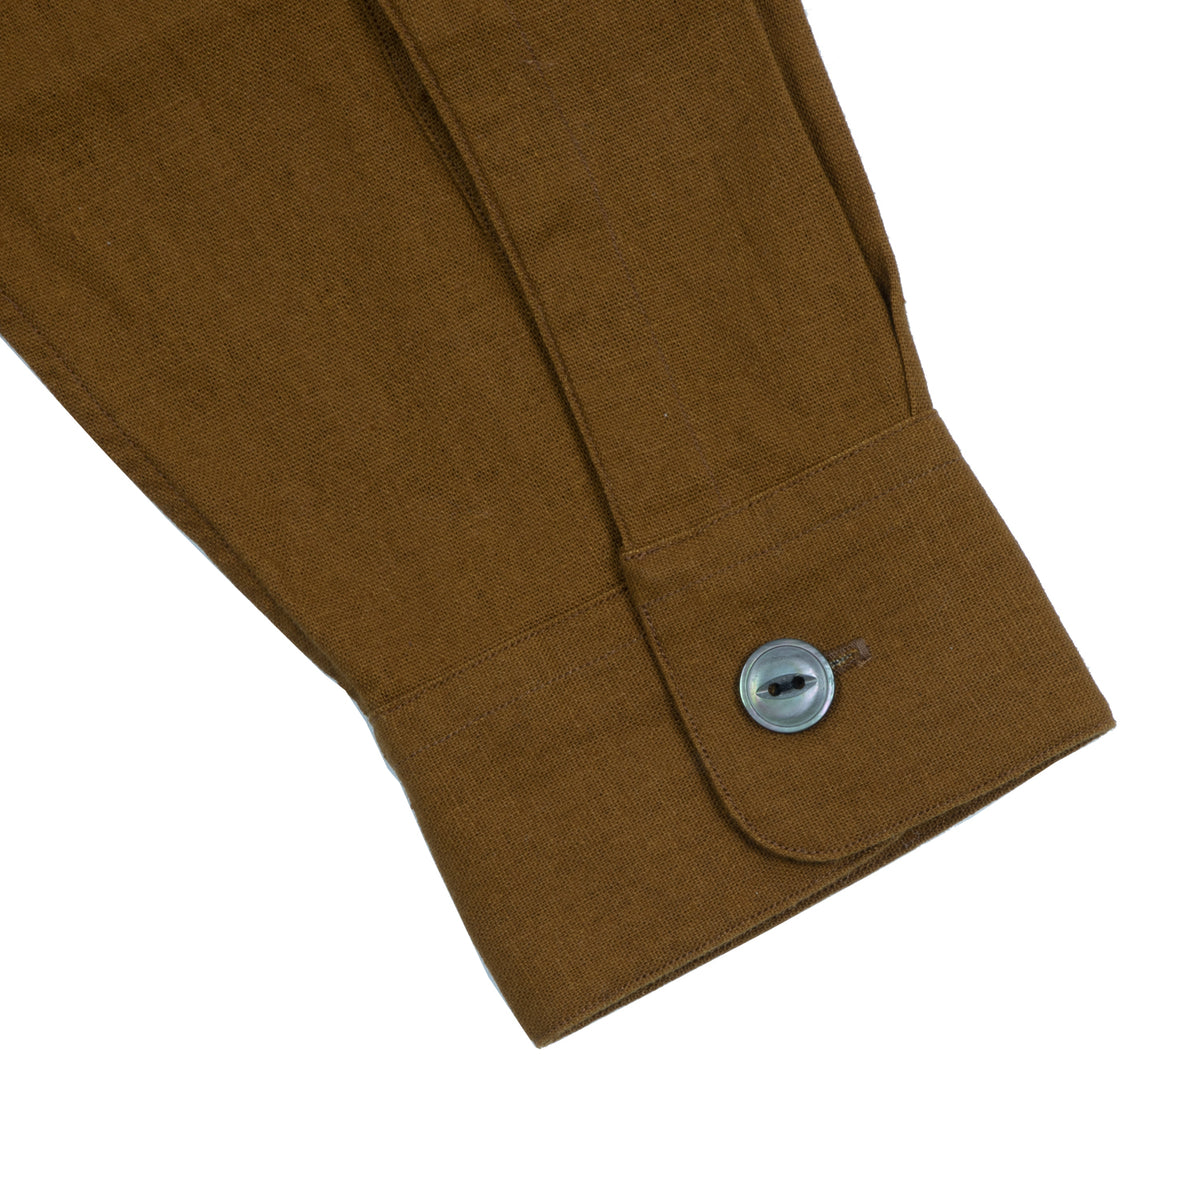 Fujito - Fatigue Shirt - Nut Brown